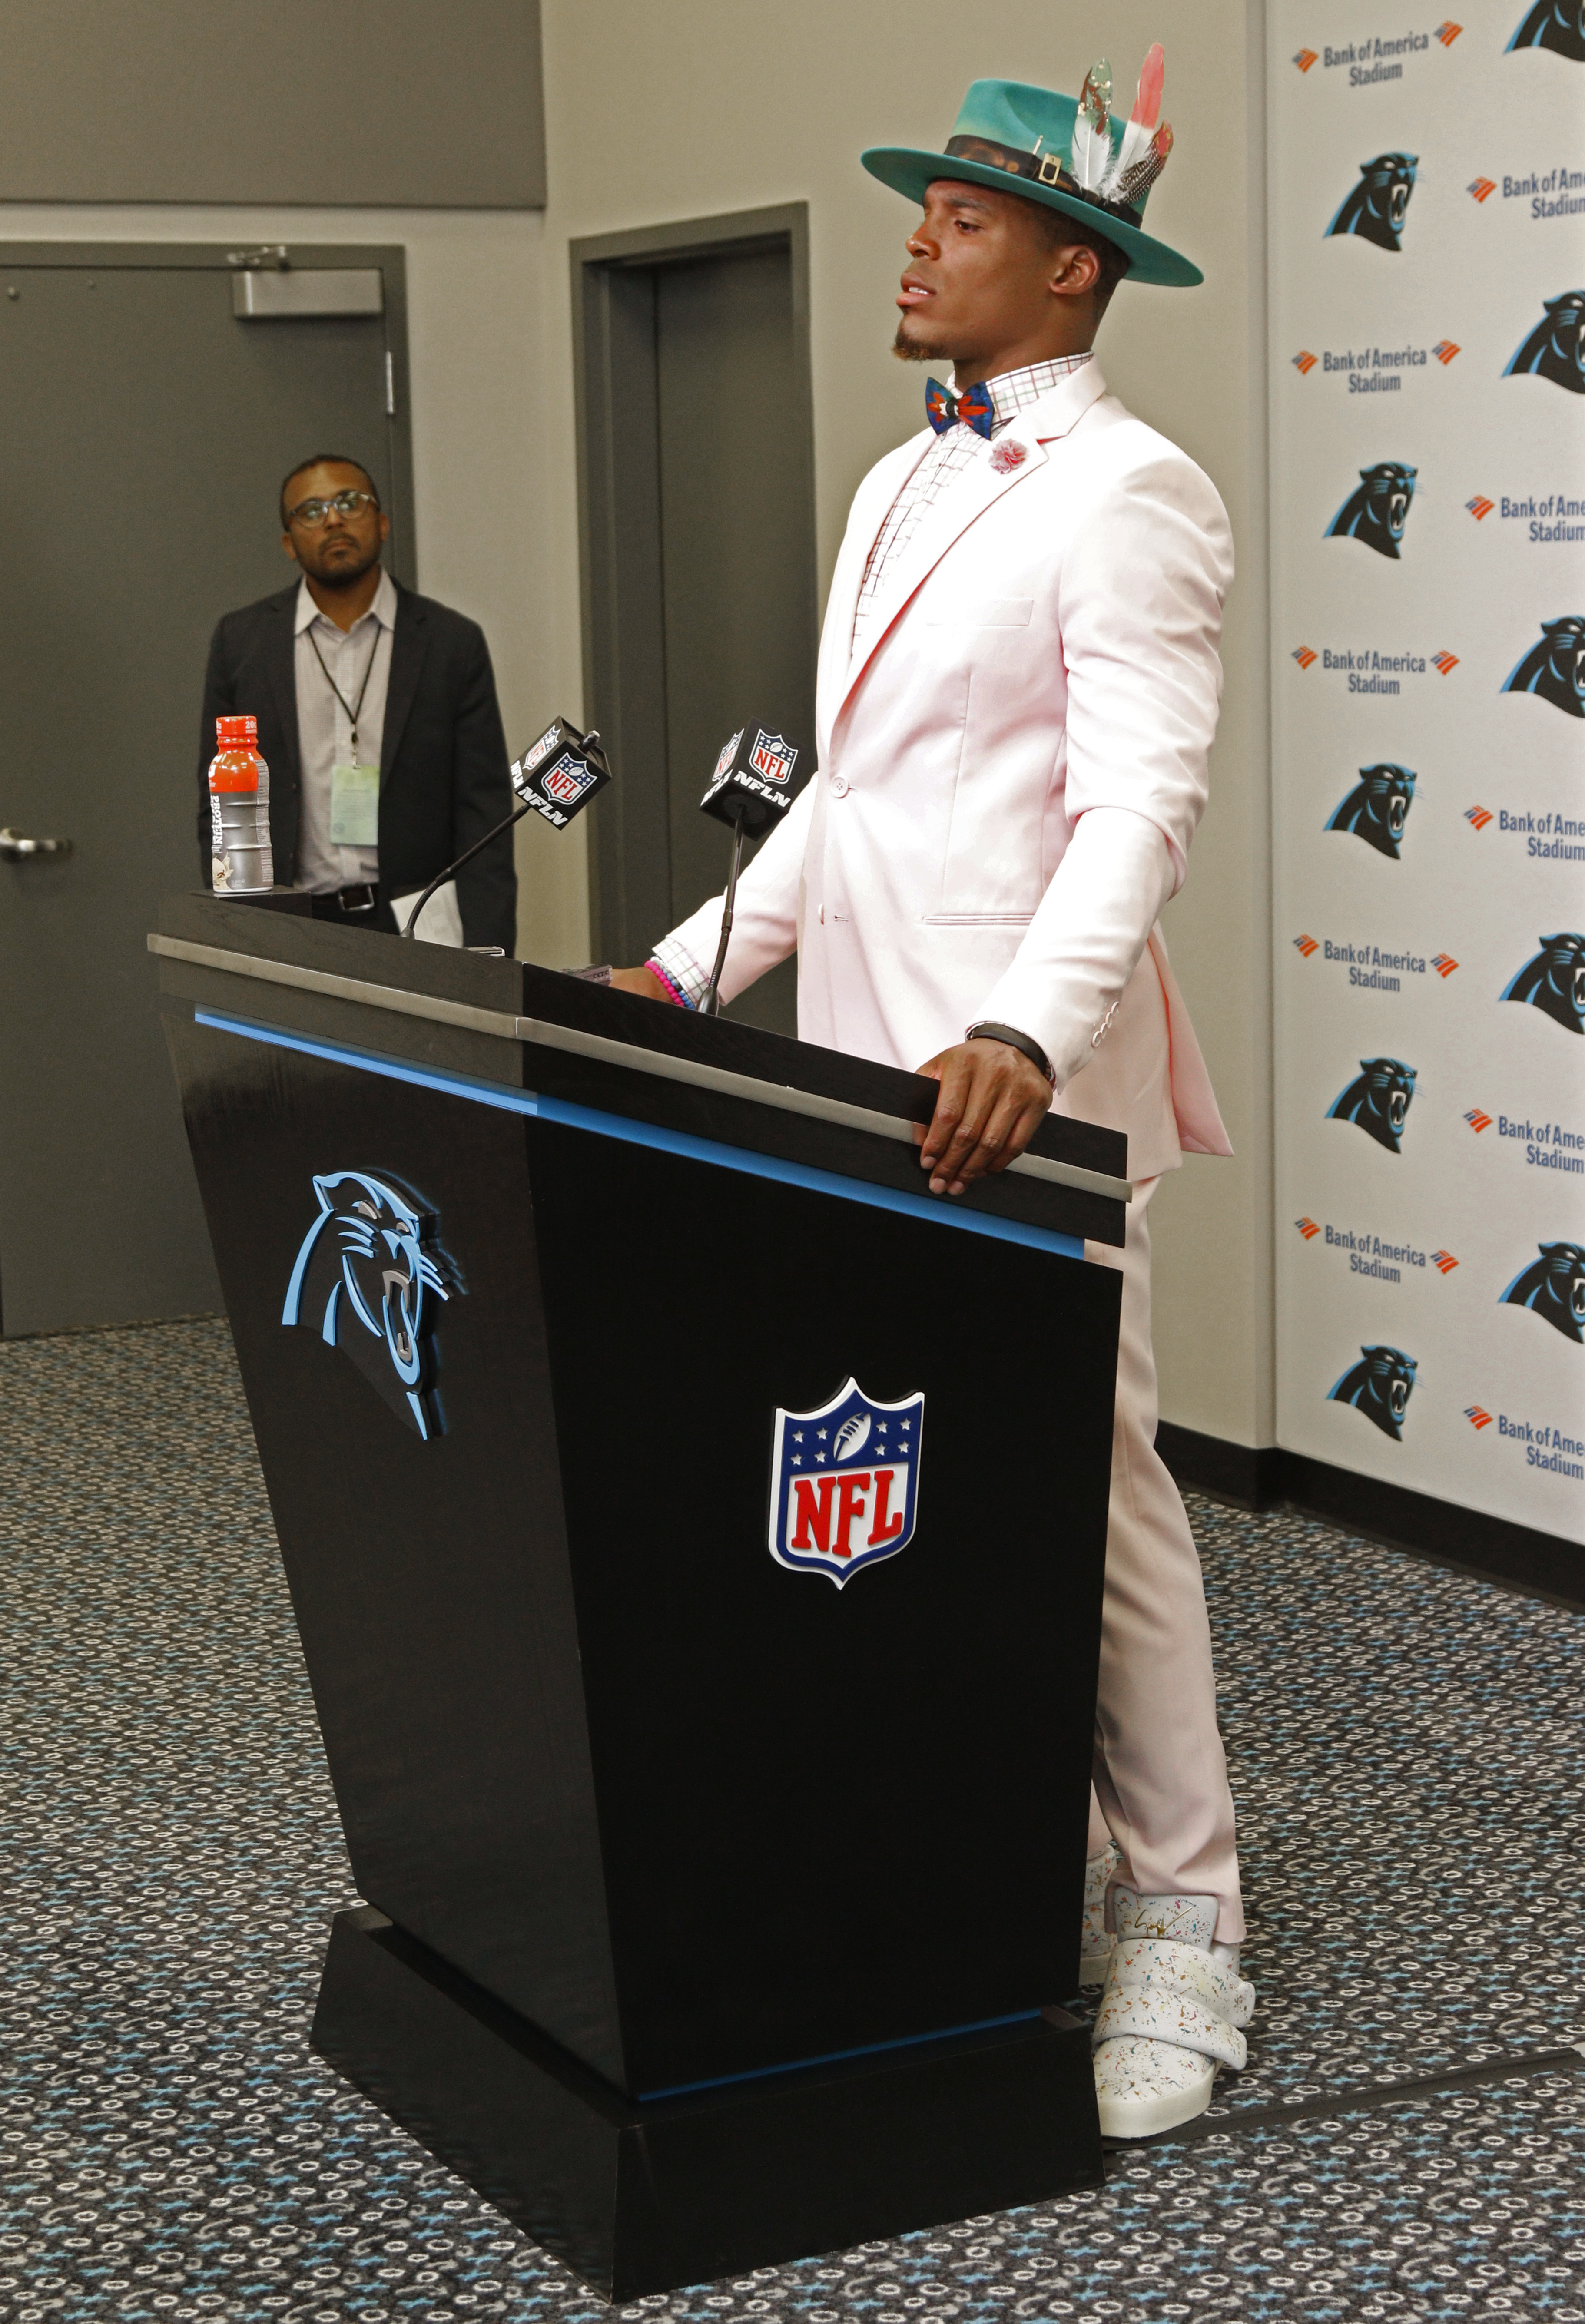 FILE - In this Sunday, Oct. 30, 2016, file photo, Carolina Panthers' Cam Newton speaks to the media about the officiating after an NFL football game against the Arizona Cardinals, in Charlotte, N.C. Quarterbacks say they take too many dirty hits. Receiver